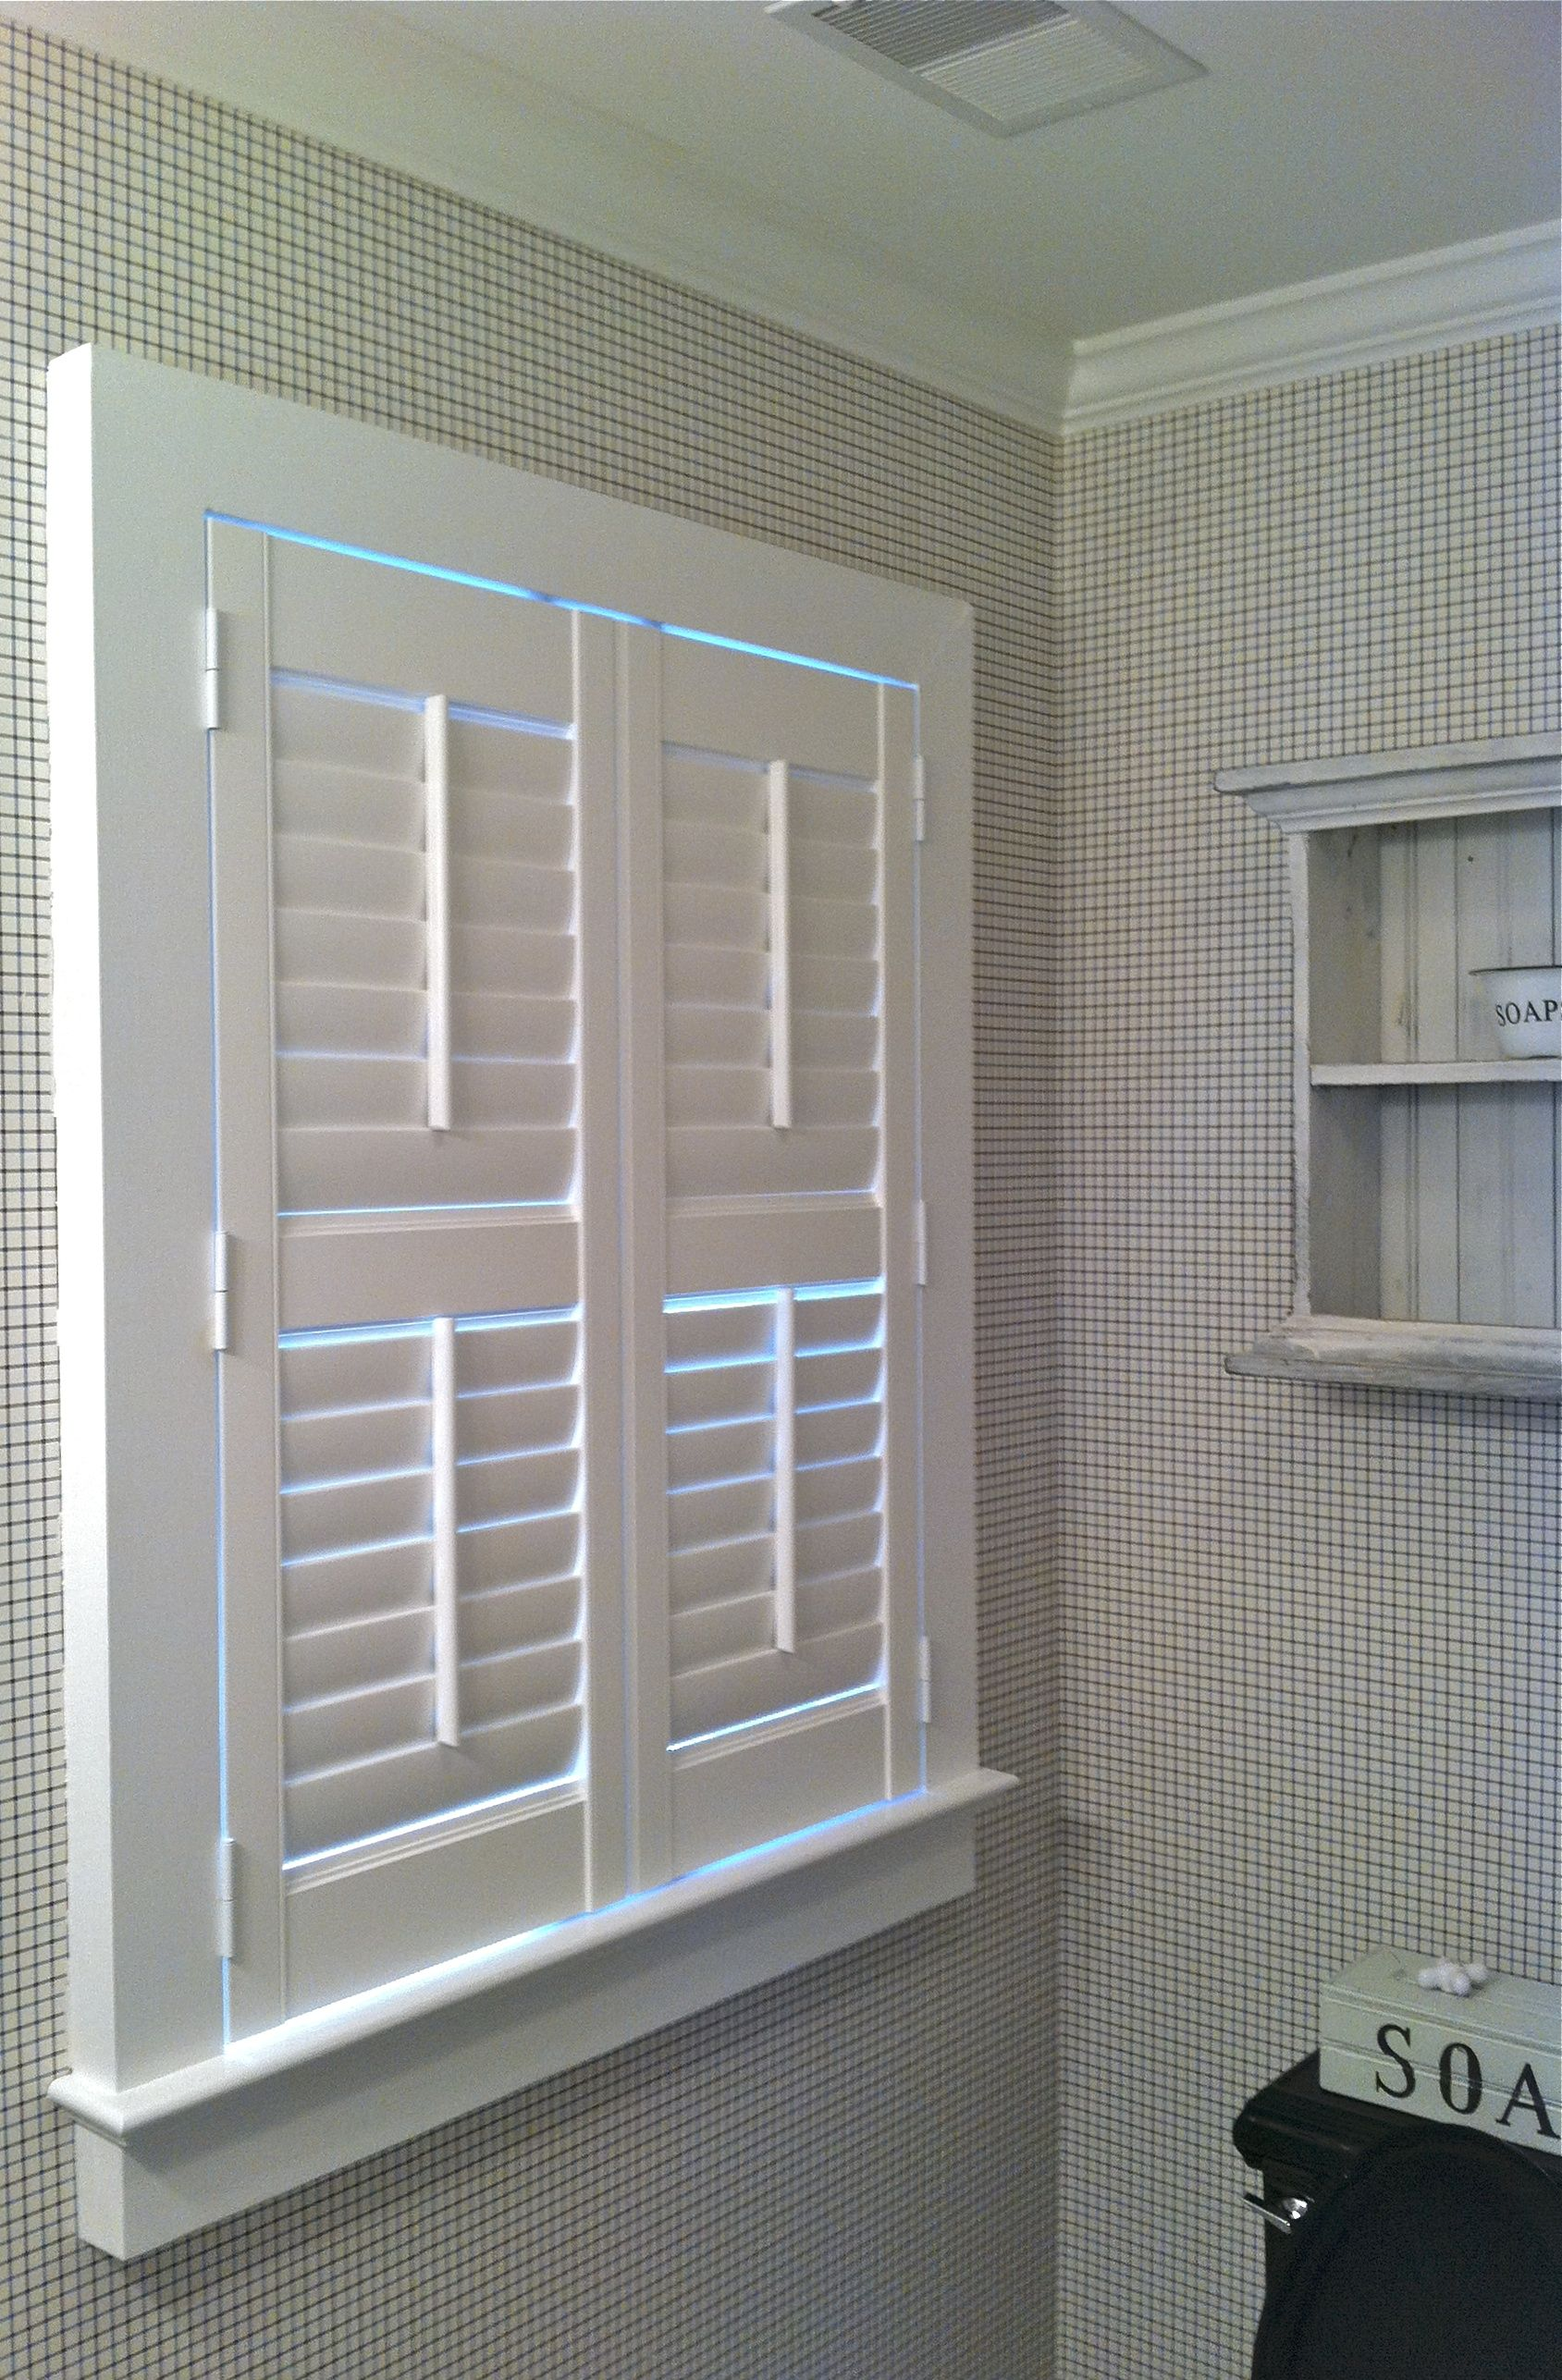 shutter indoor and window promiseshutters blinds pvc plantation coast brisbane photo shutters gallery gold exterior home